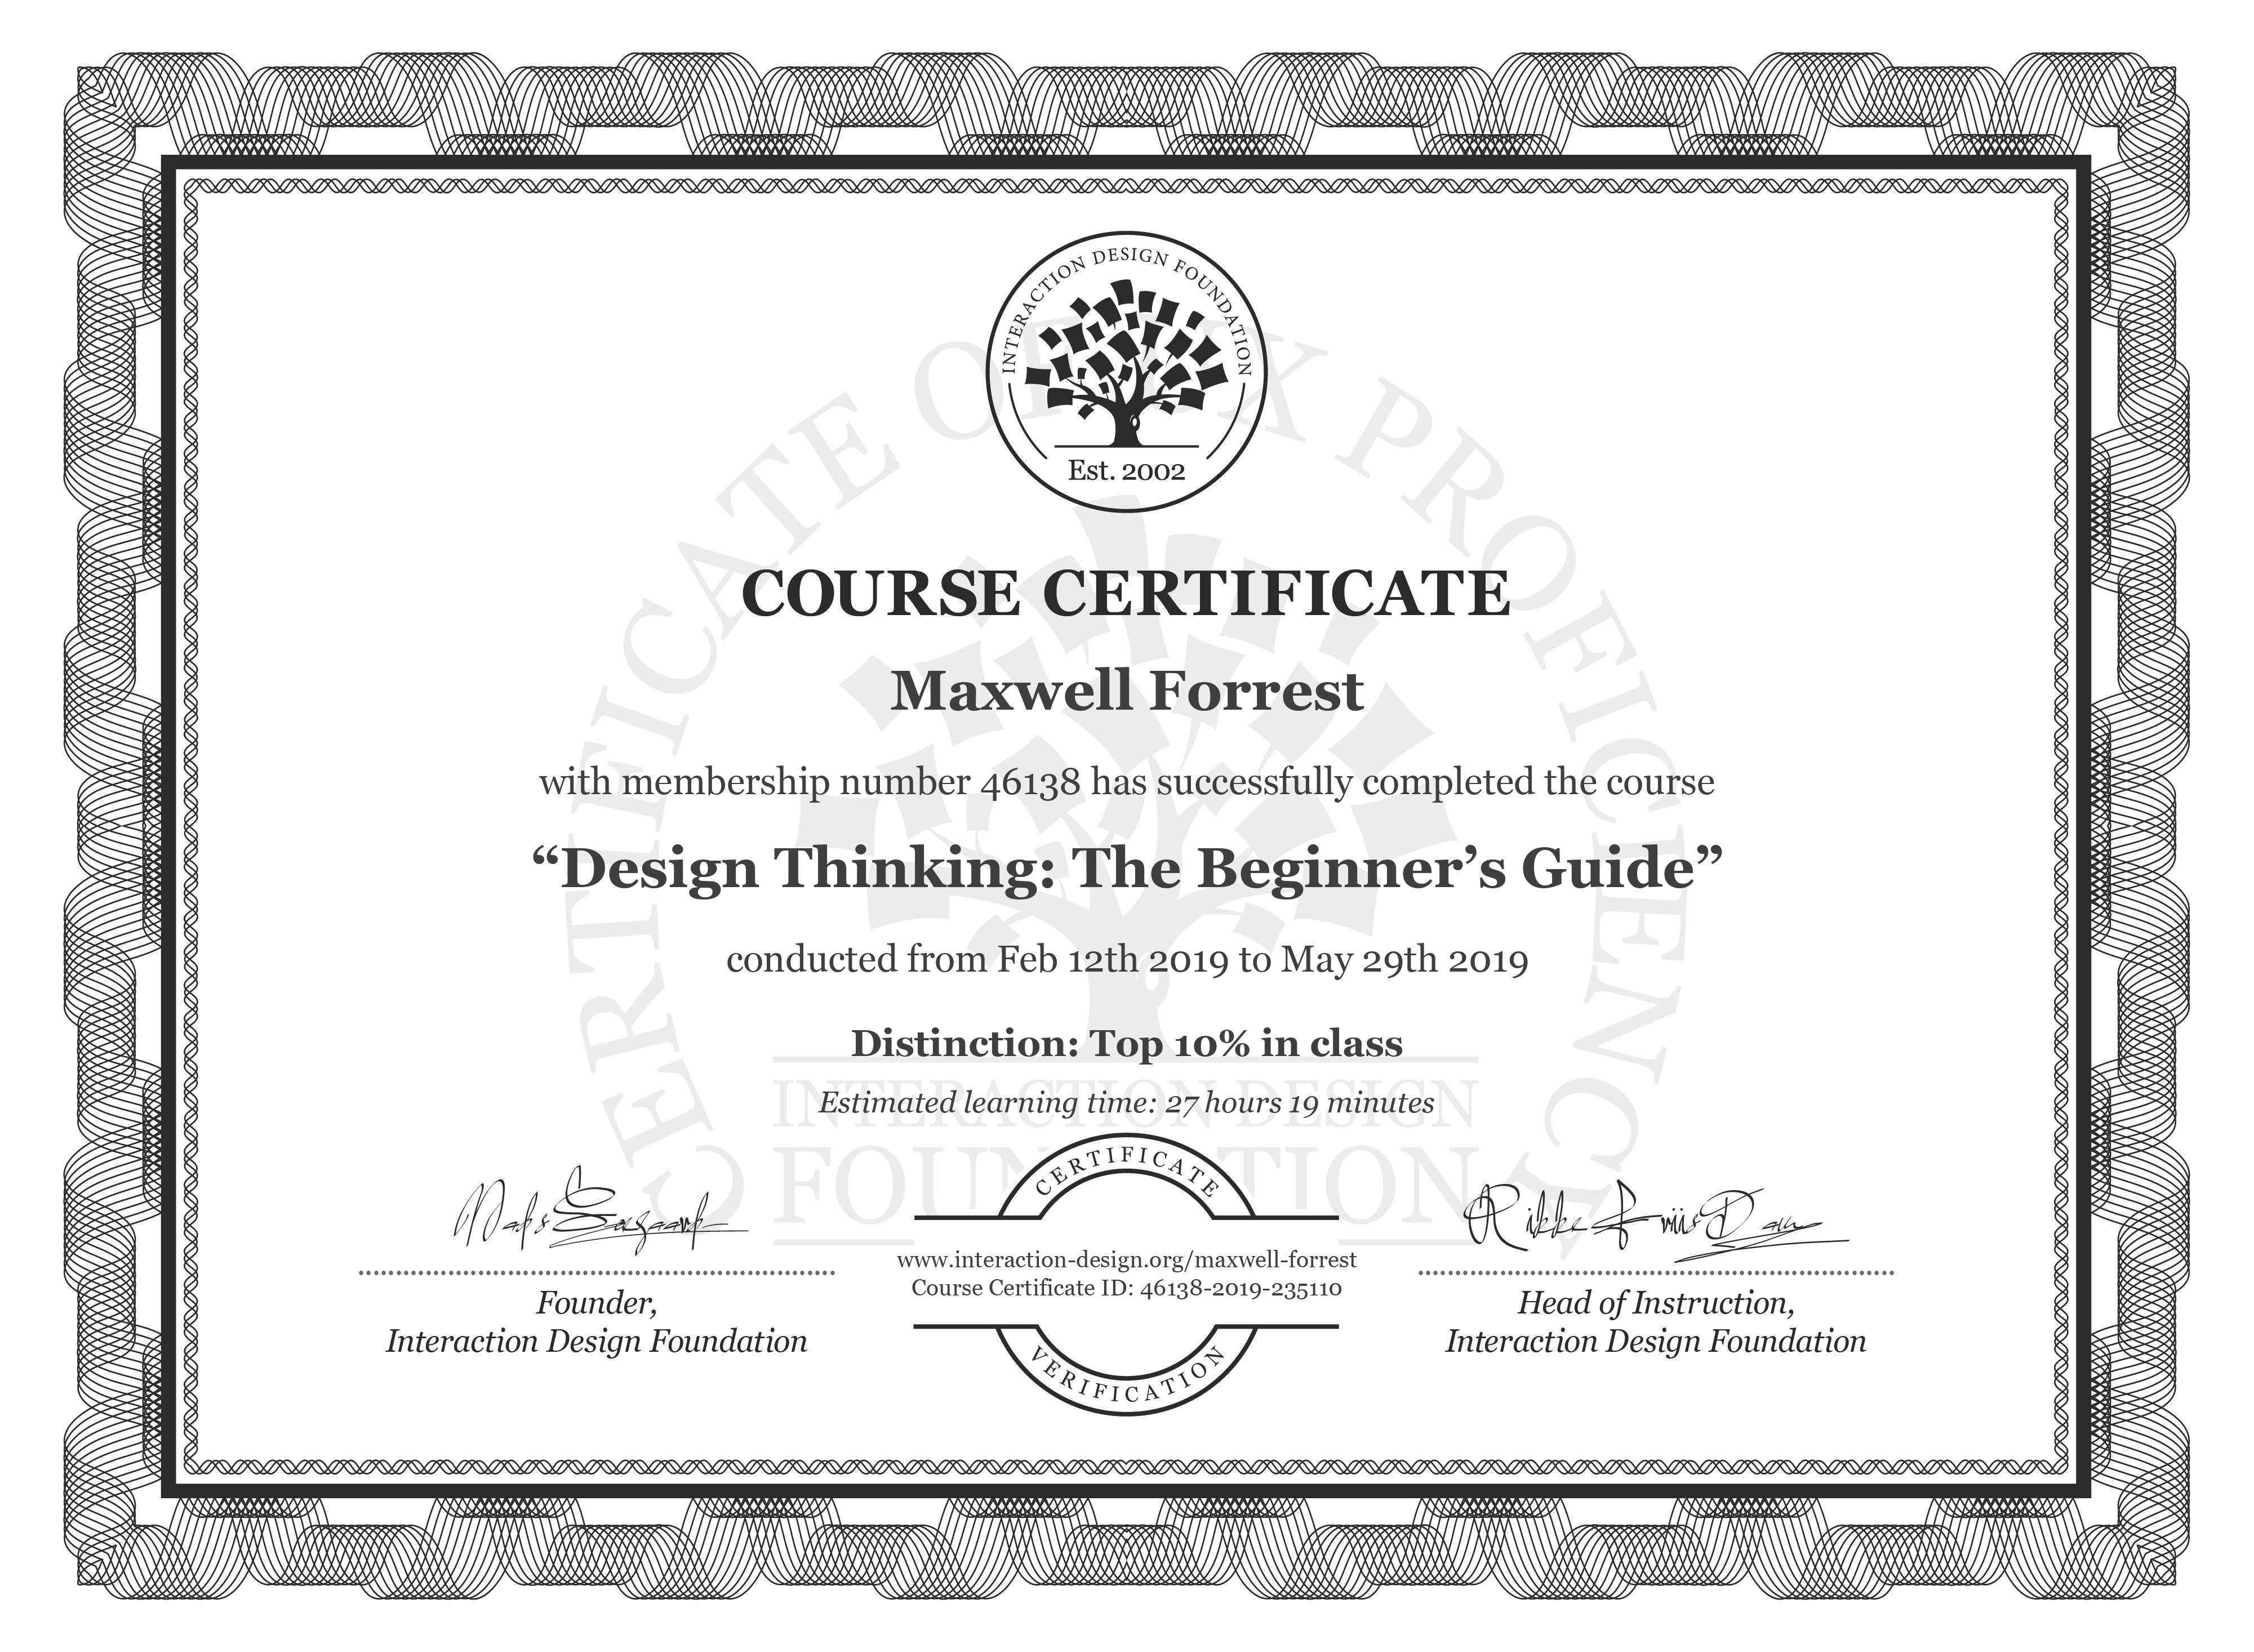 Maxwell Forrest: Course Certificate - Design Thinking: The Beginner's Guide